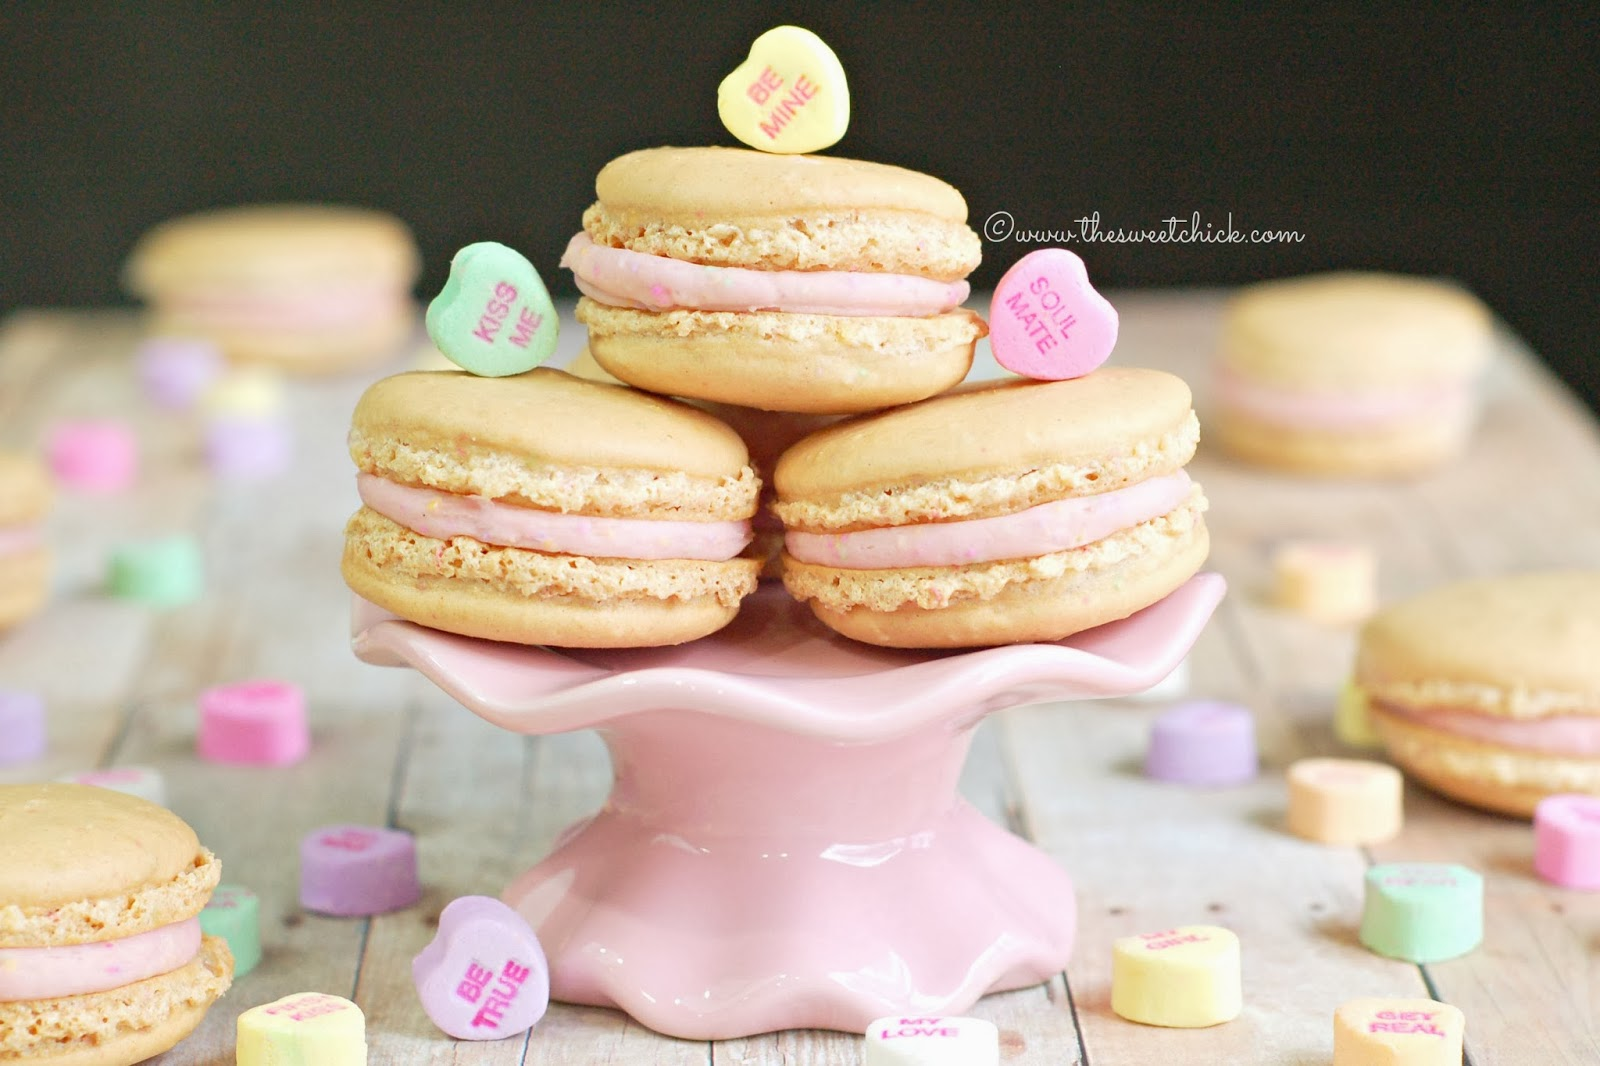 Conversation Heart Macarons @www.thesweetchick.com